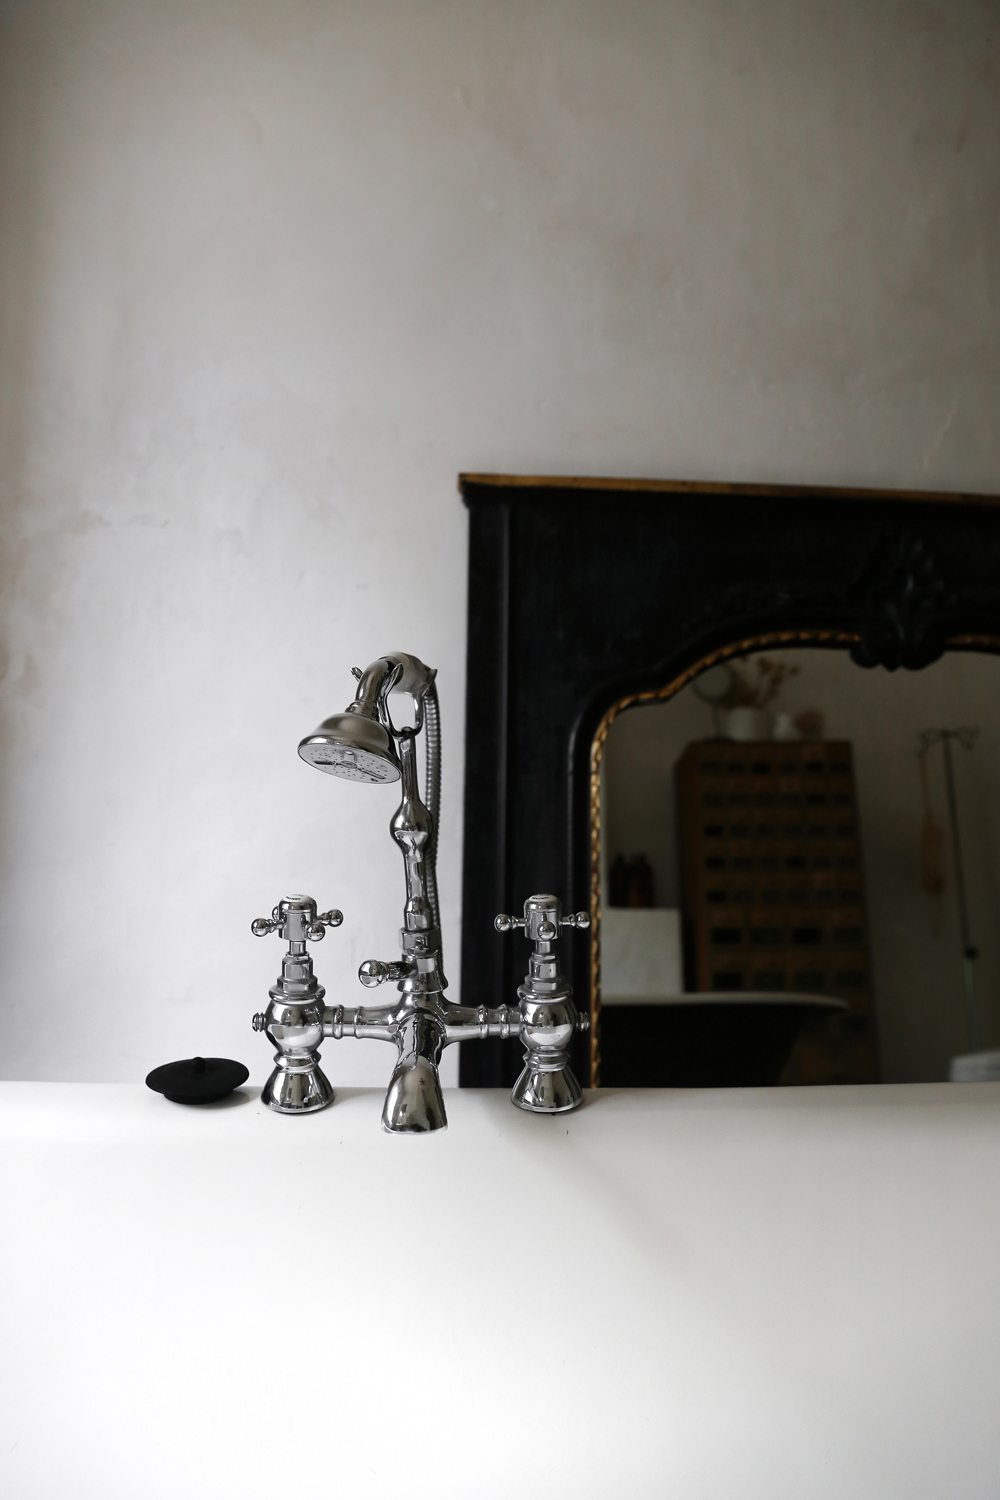 Bathroom details from the main house.